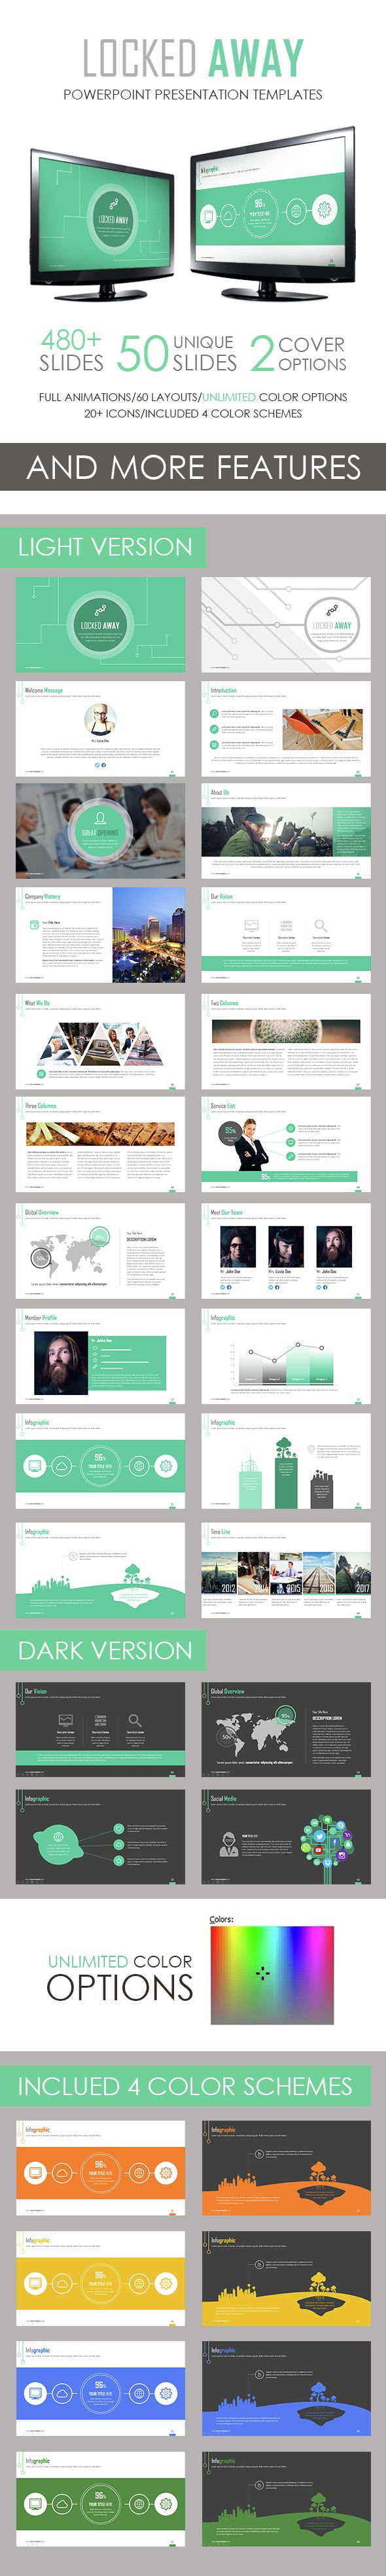 Locked away powerpoint template template ppt design and locked away powerpoint template toneelgroepblik Choice Image